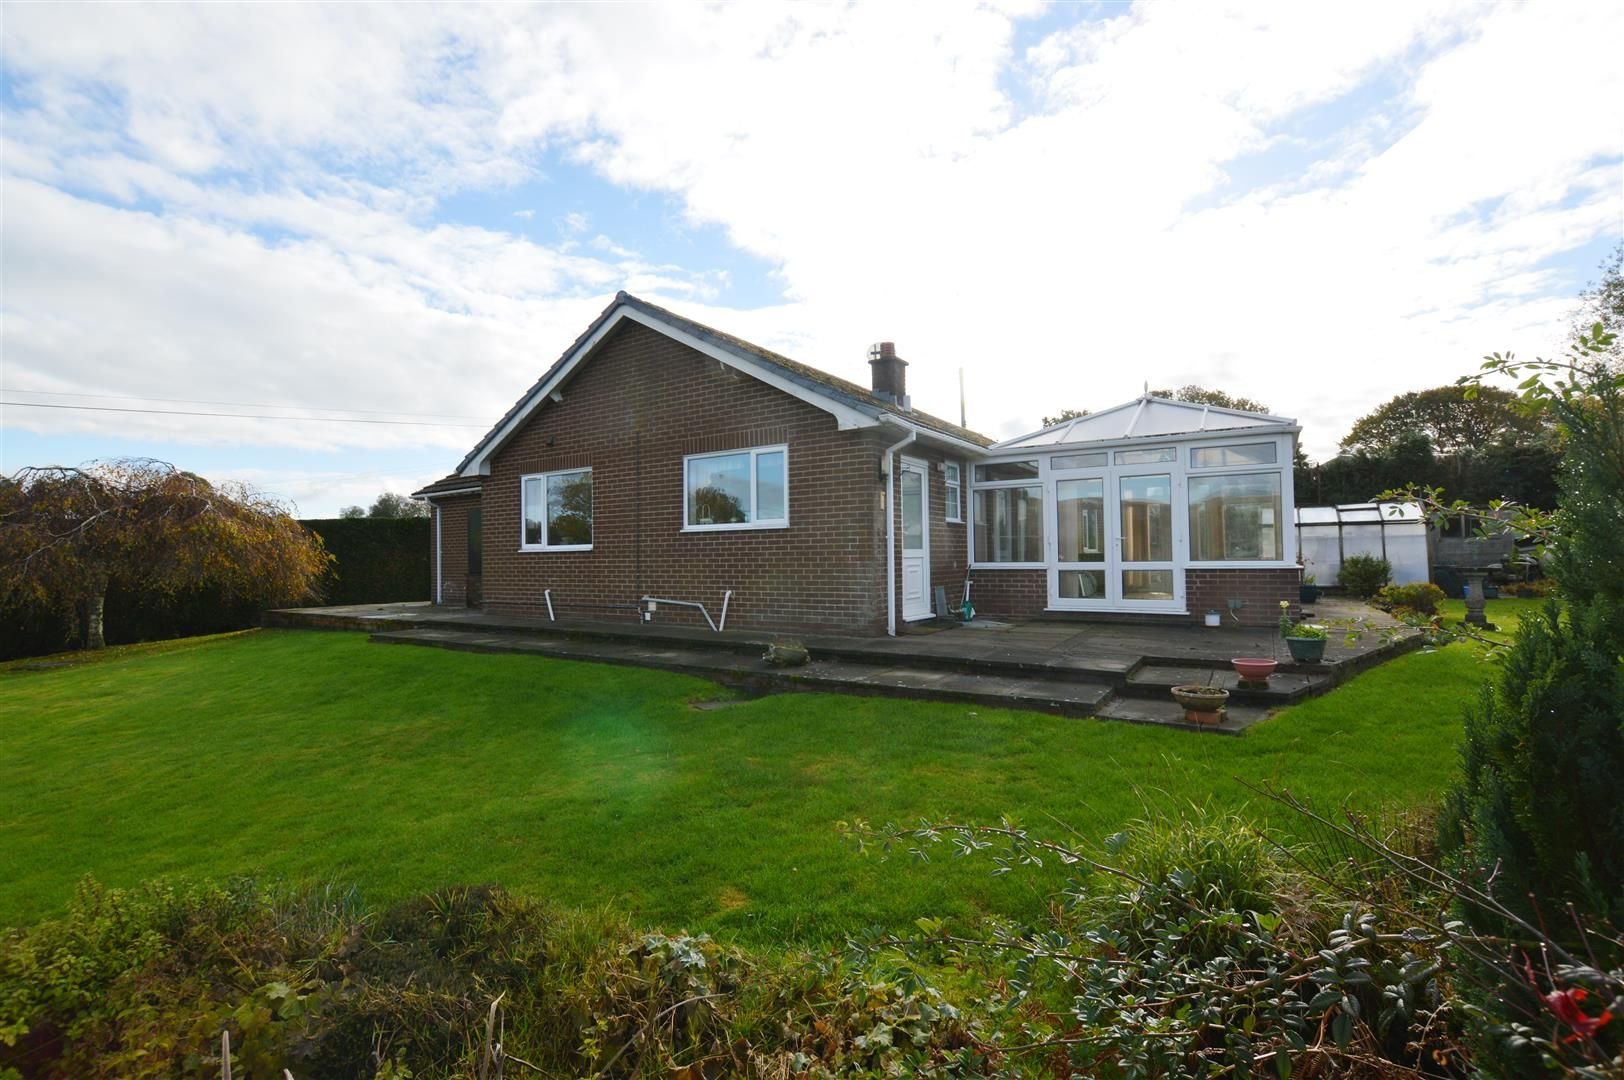 3 bed detached-bungalow for sale in Llandrindod Wells  - Property Image 7